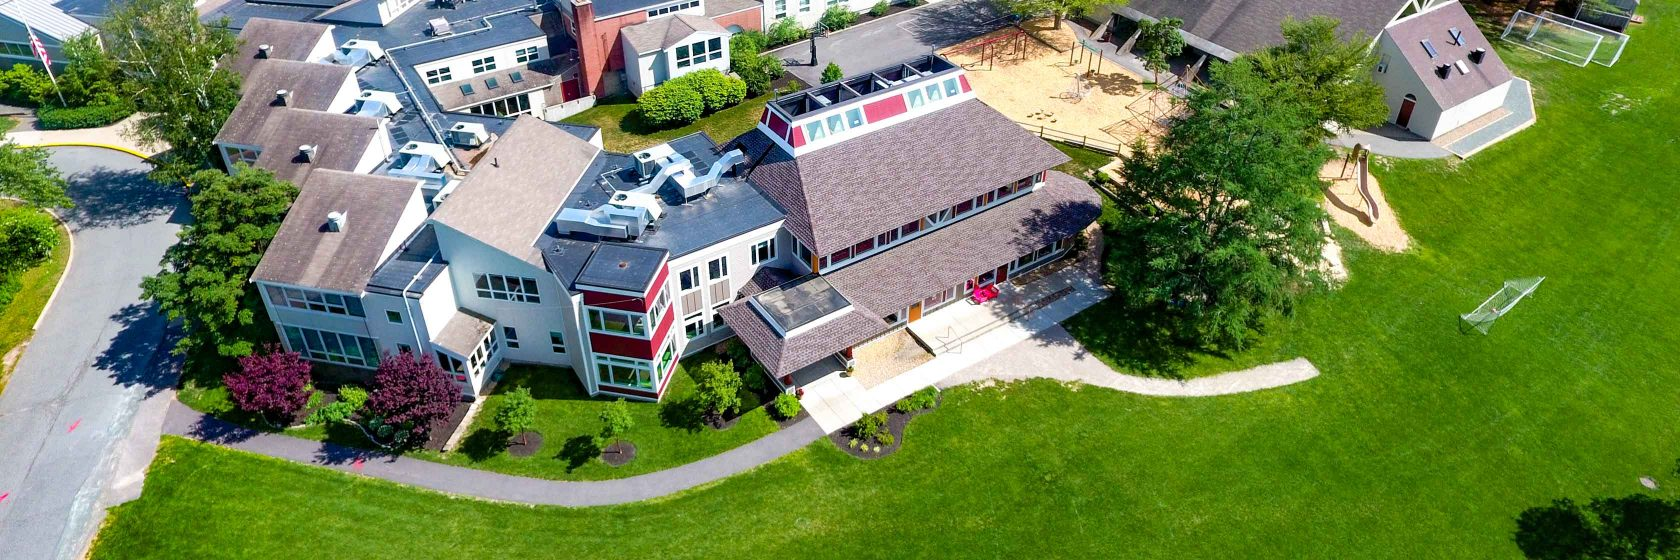 An aerial view of the Dedham Country Day School campus.